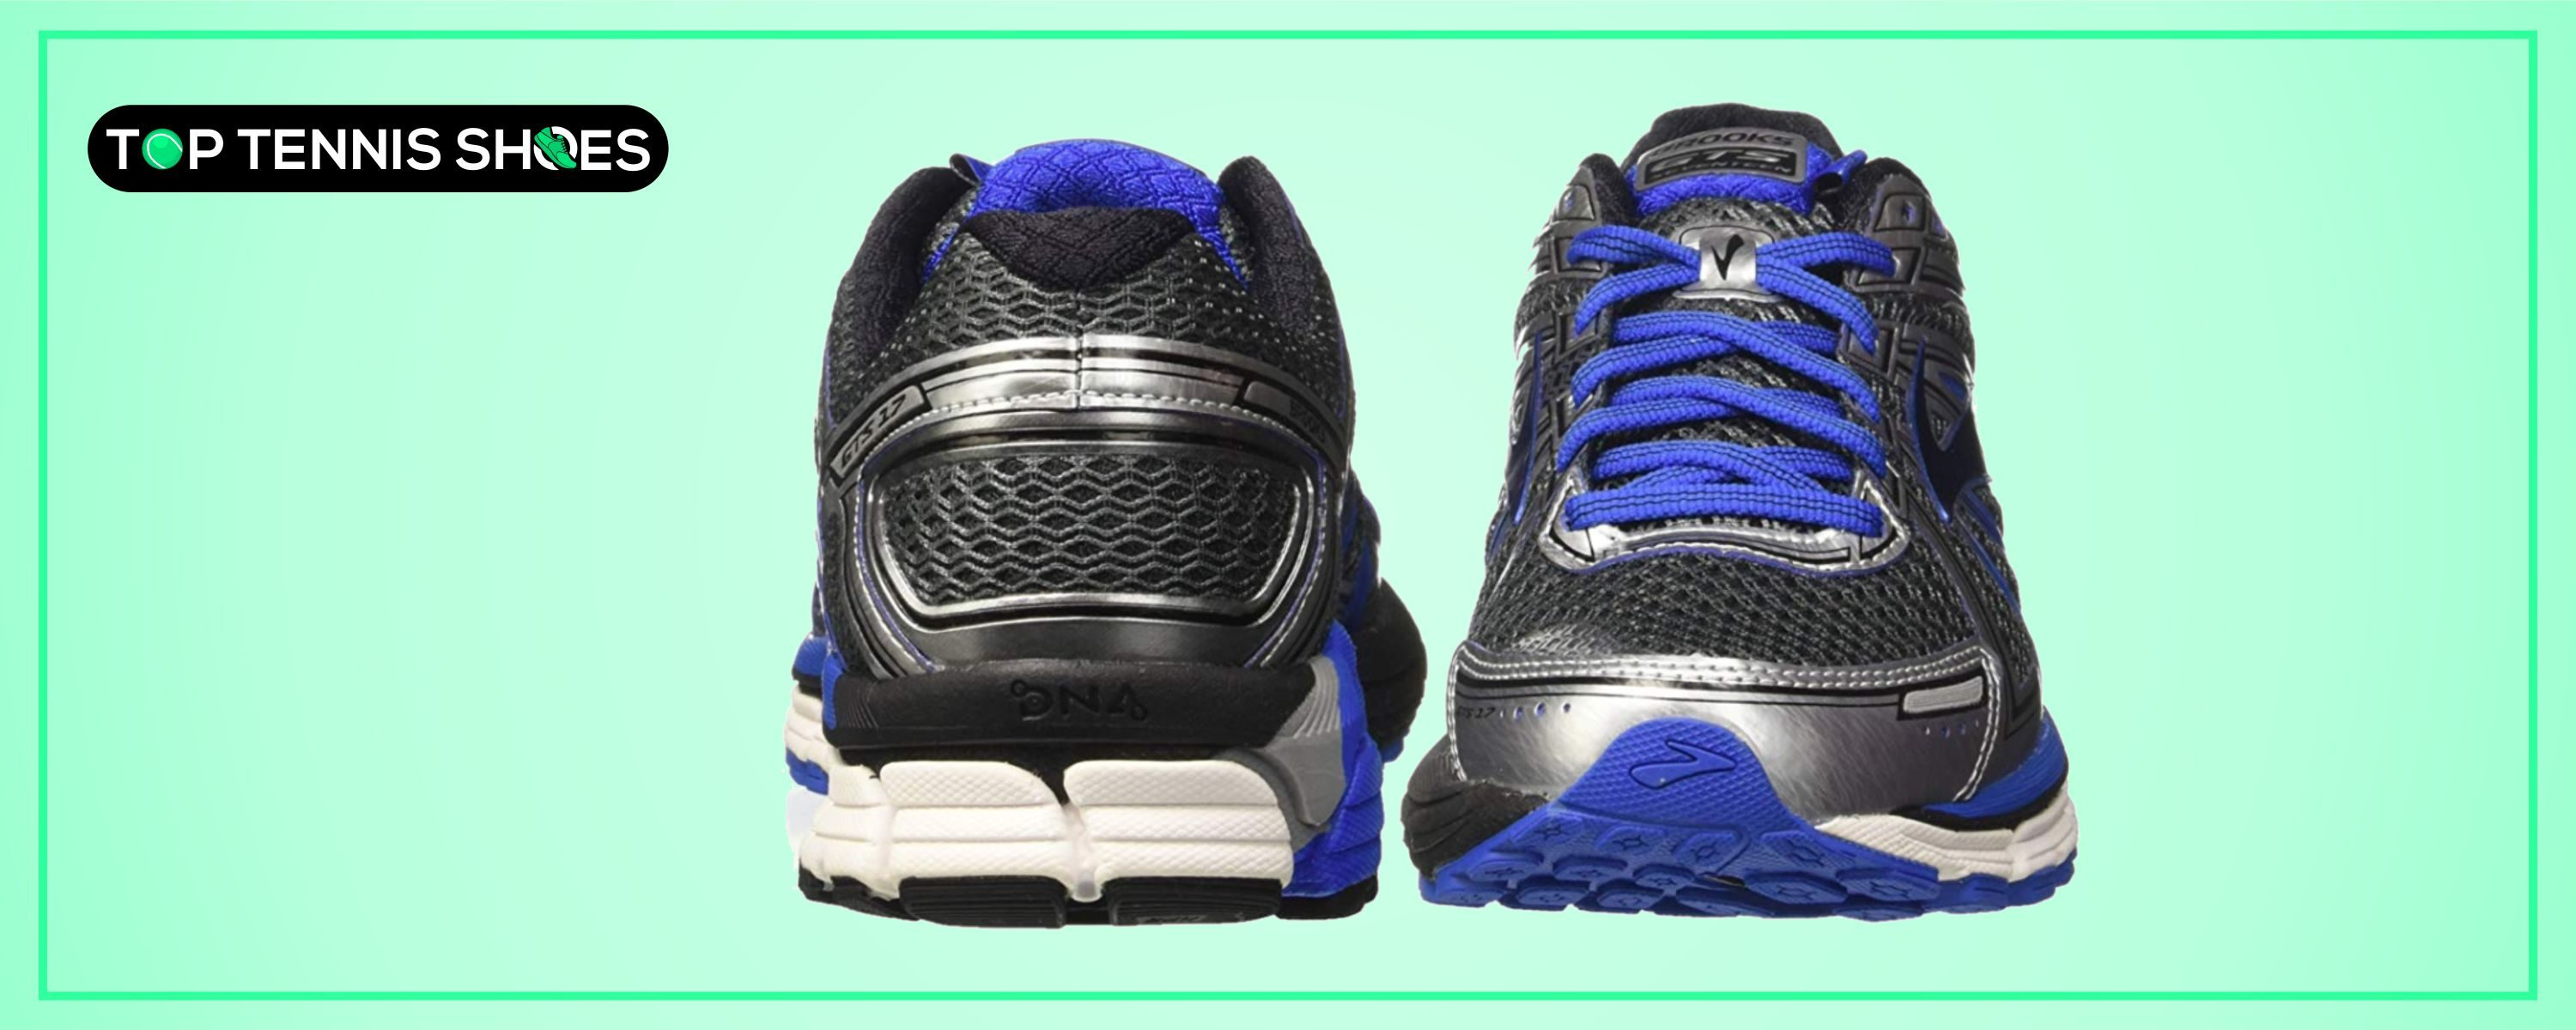 Brooks Tennis Shoes for Bunions